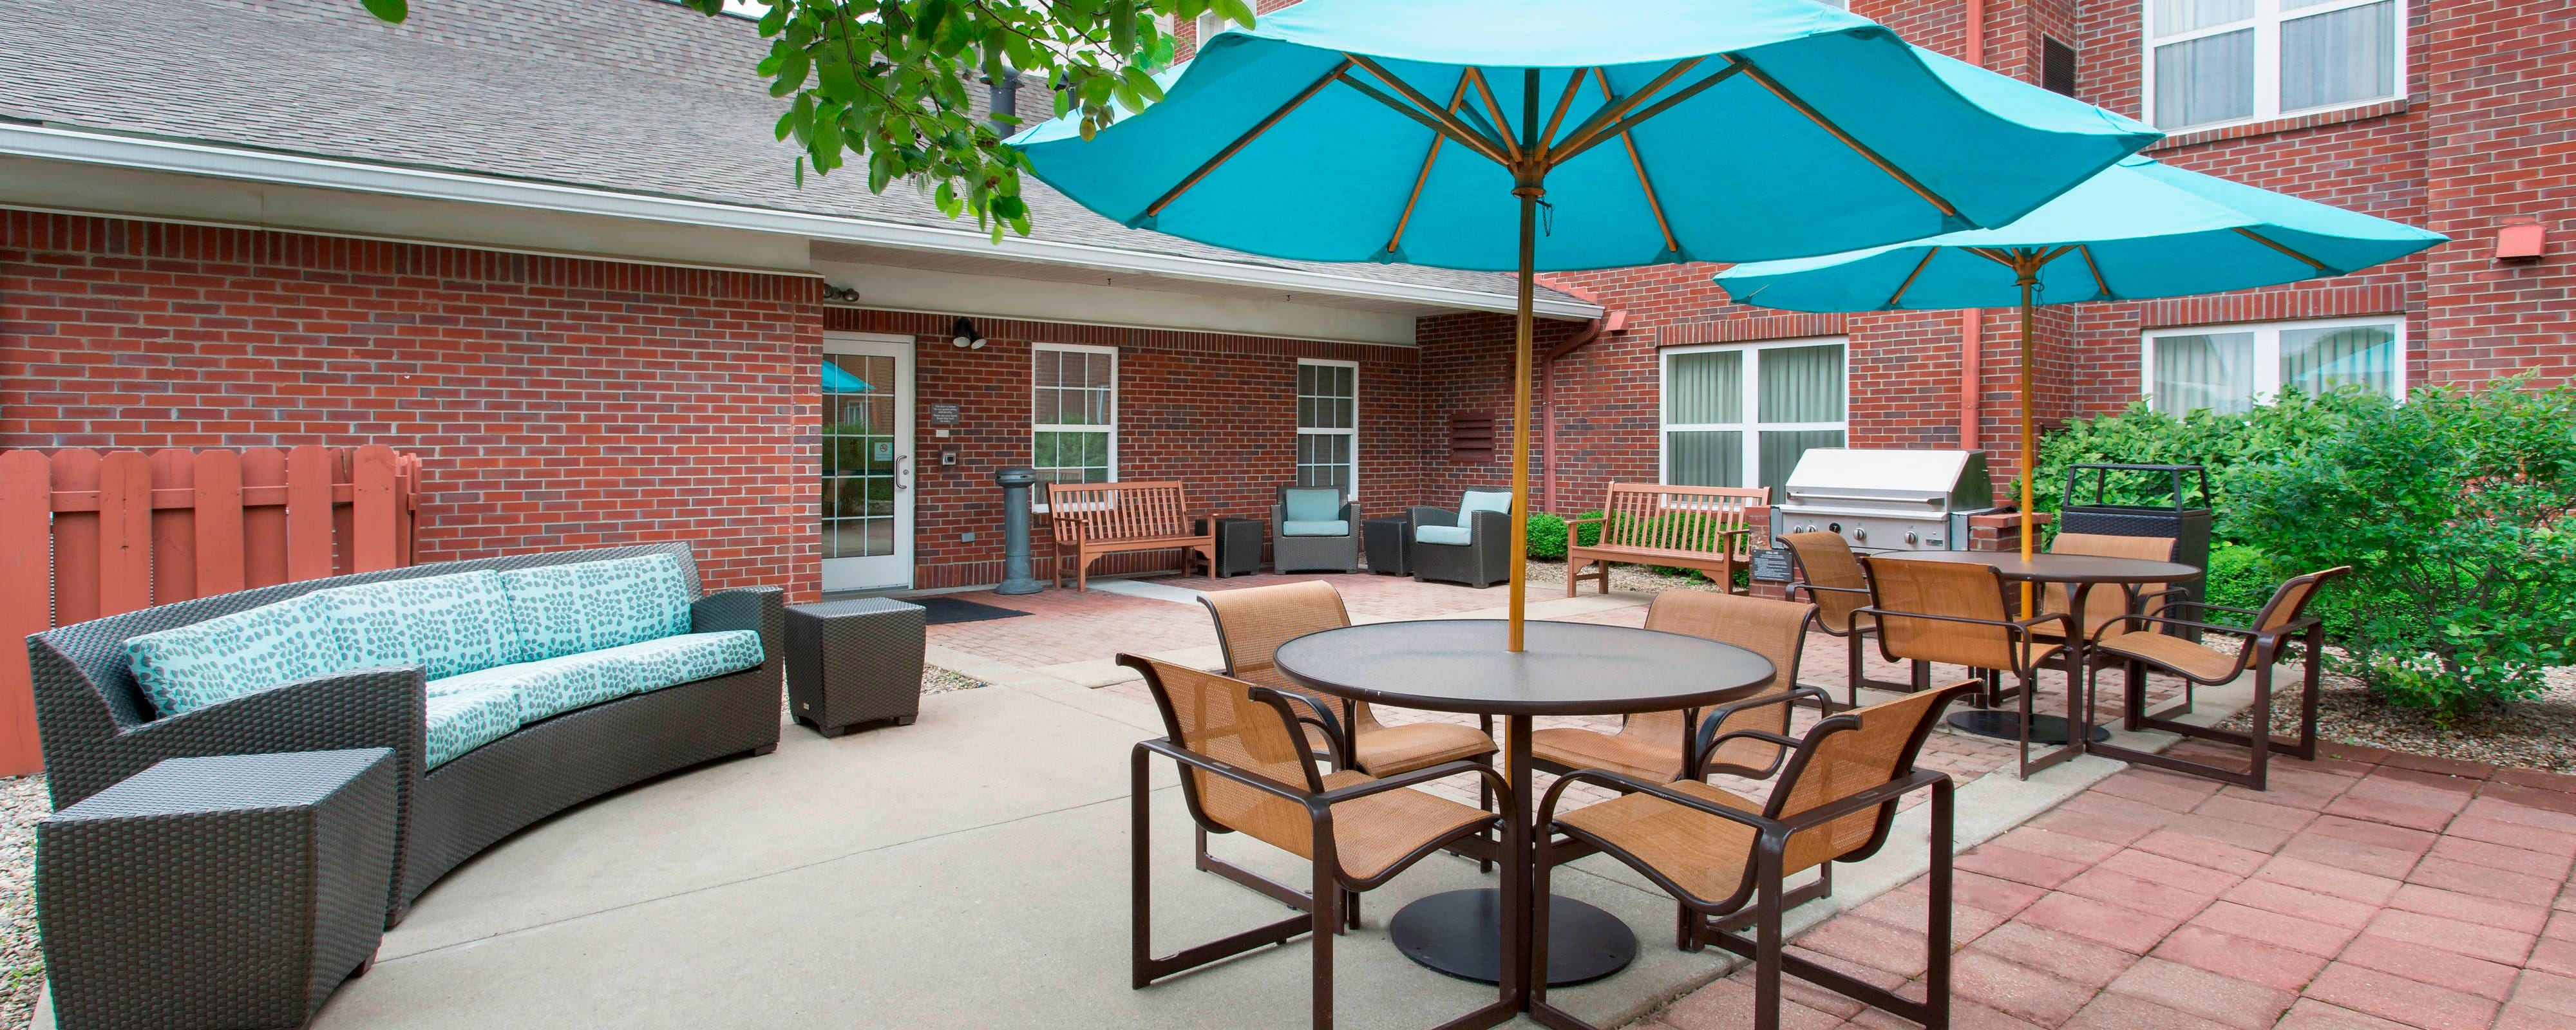 Northeast Louisville Hotel Patio